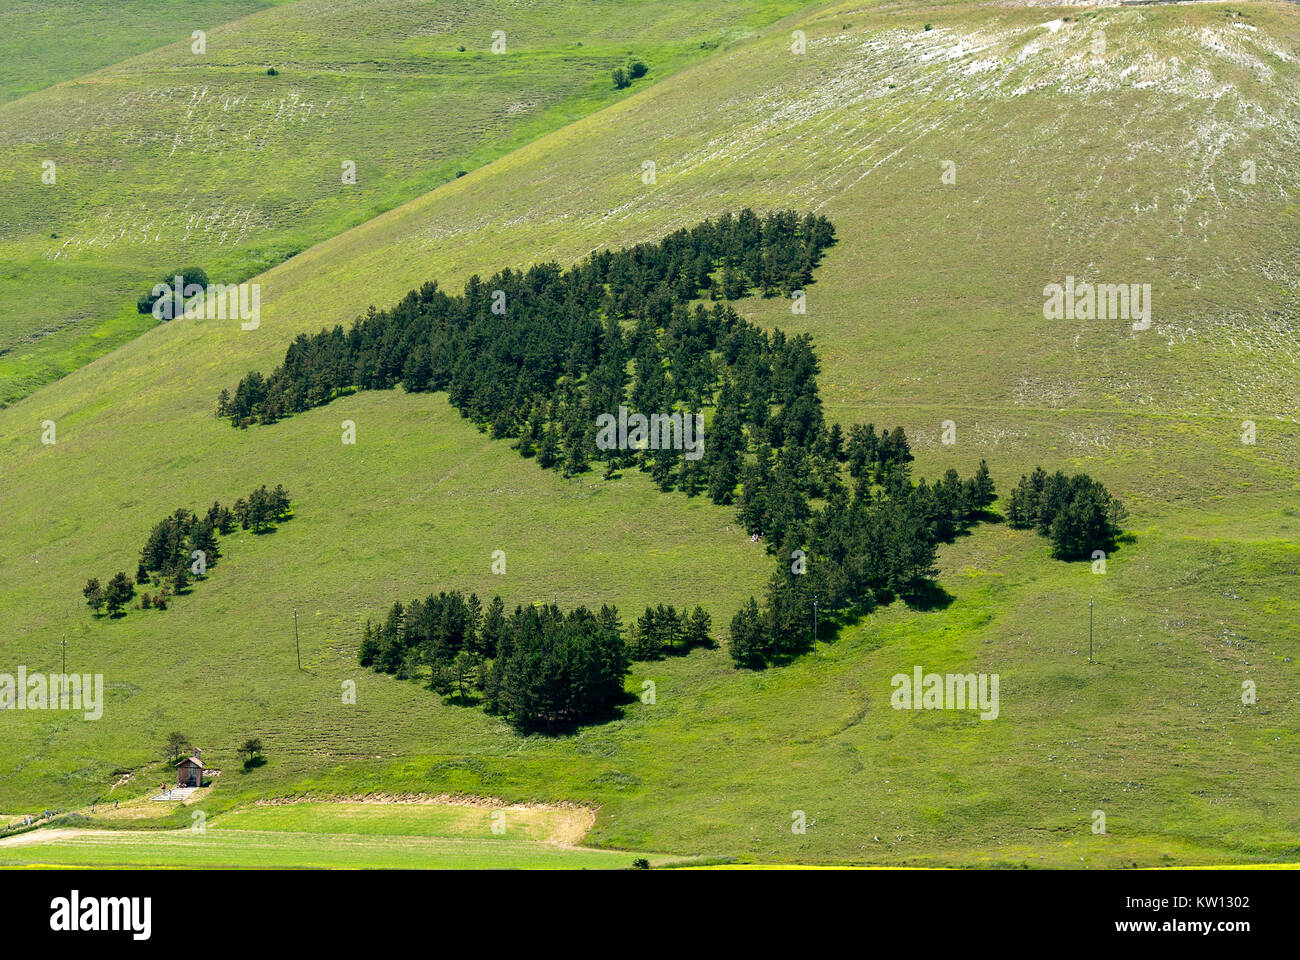 Wood shaped as Italy in castelluccio di Norcia, Sibillini Mountains National Park, Umbria, Italy - Stock Image